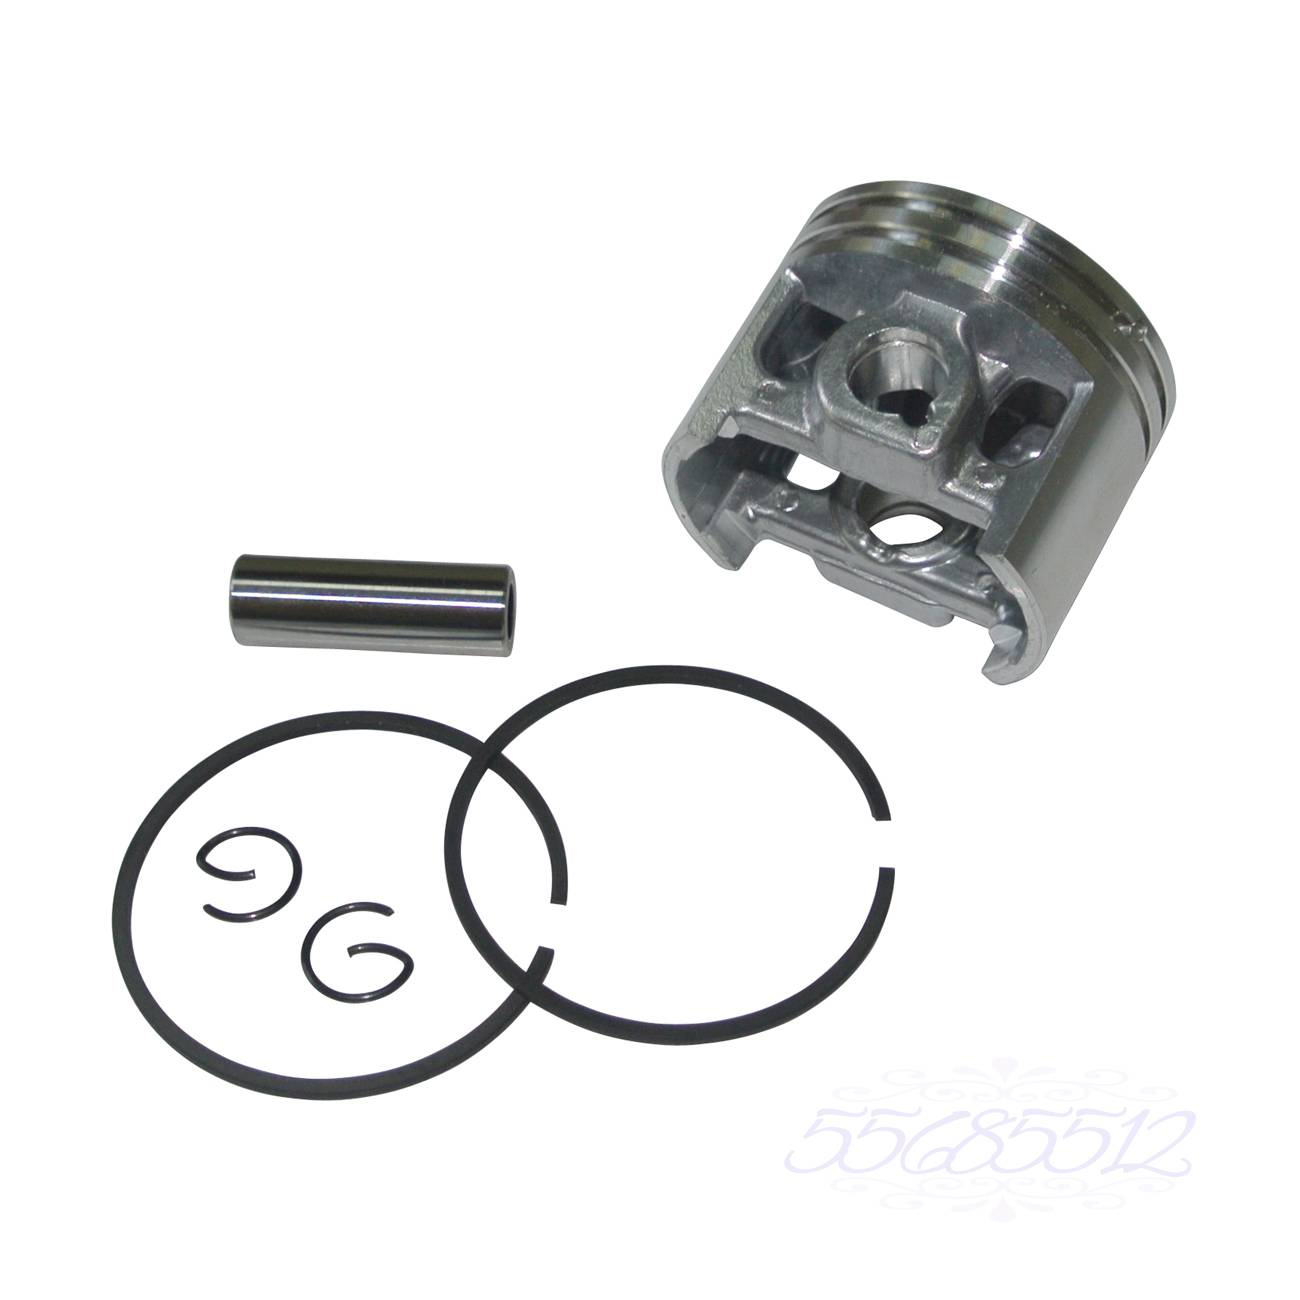 44mm Piston ve Halkalar Kiti Fit Stihl 026 MS260 MS260C 026 PRO Testereler 0